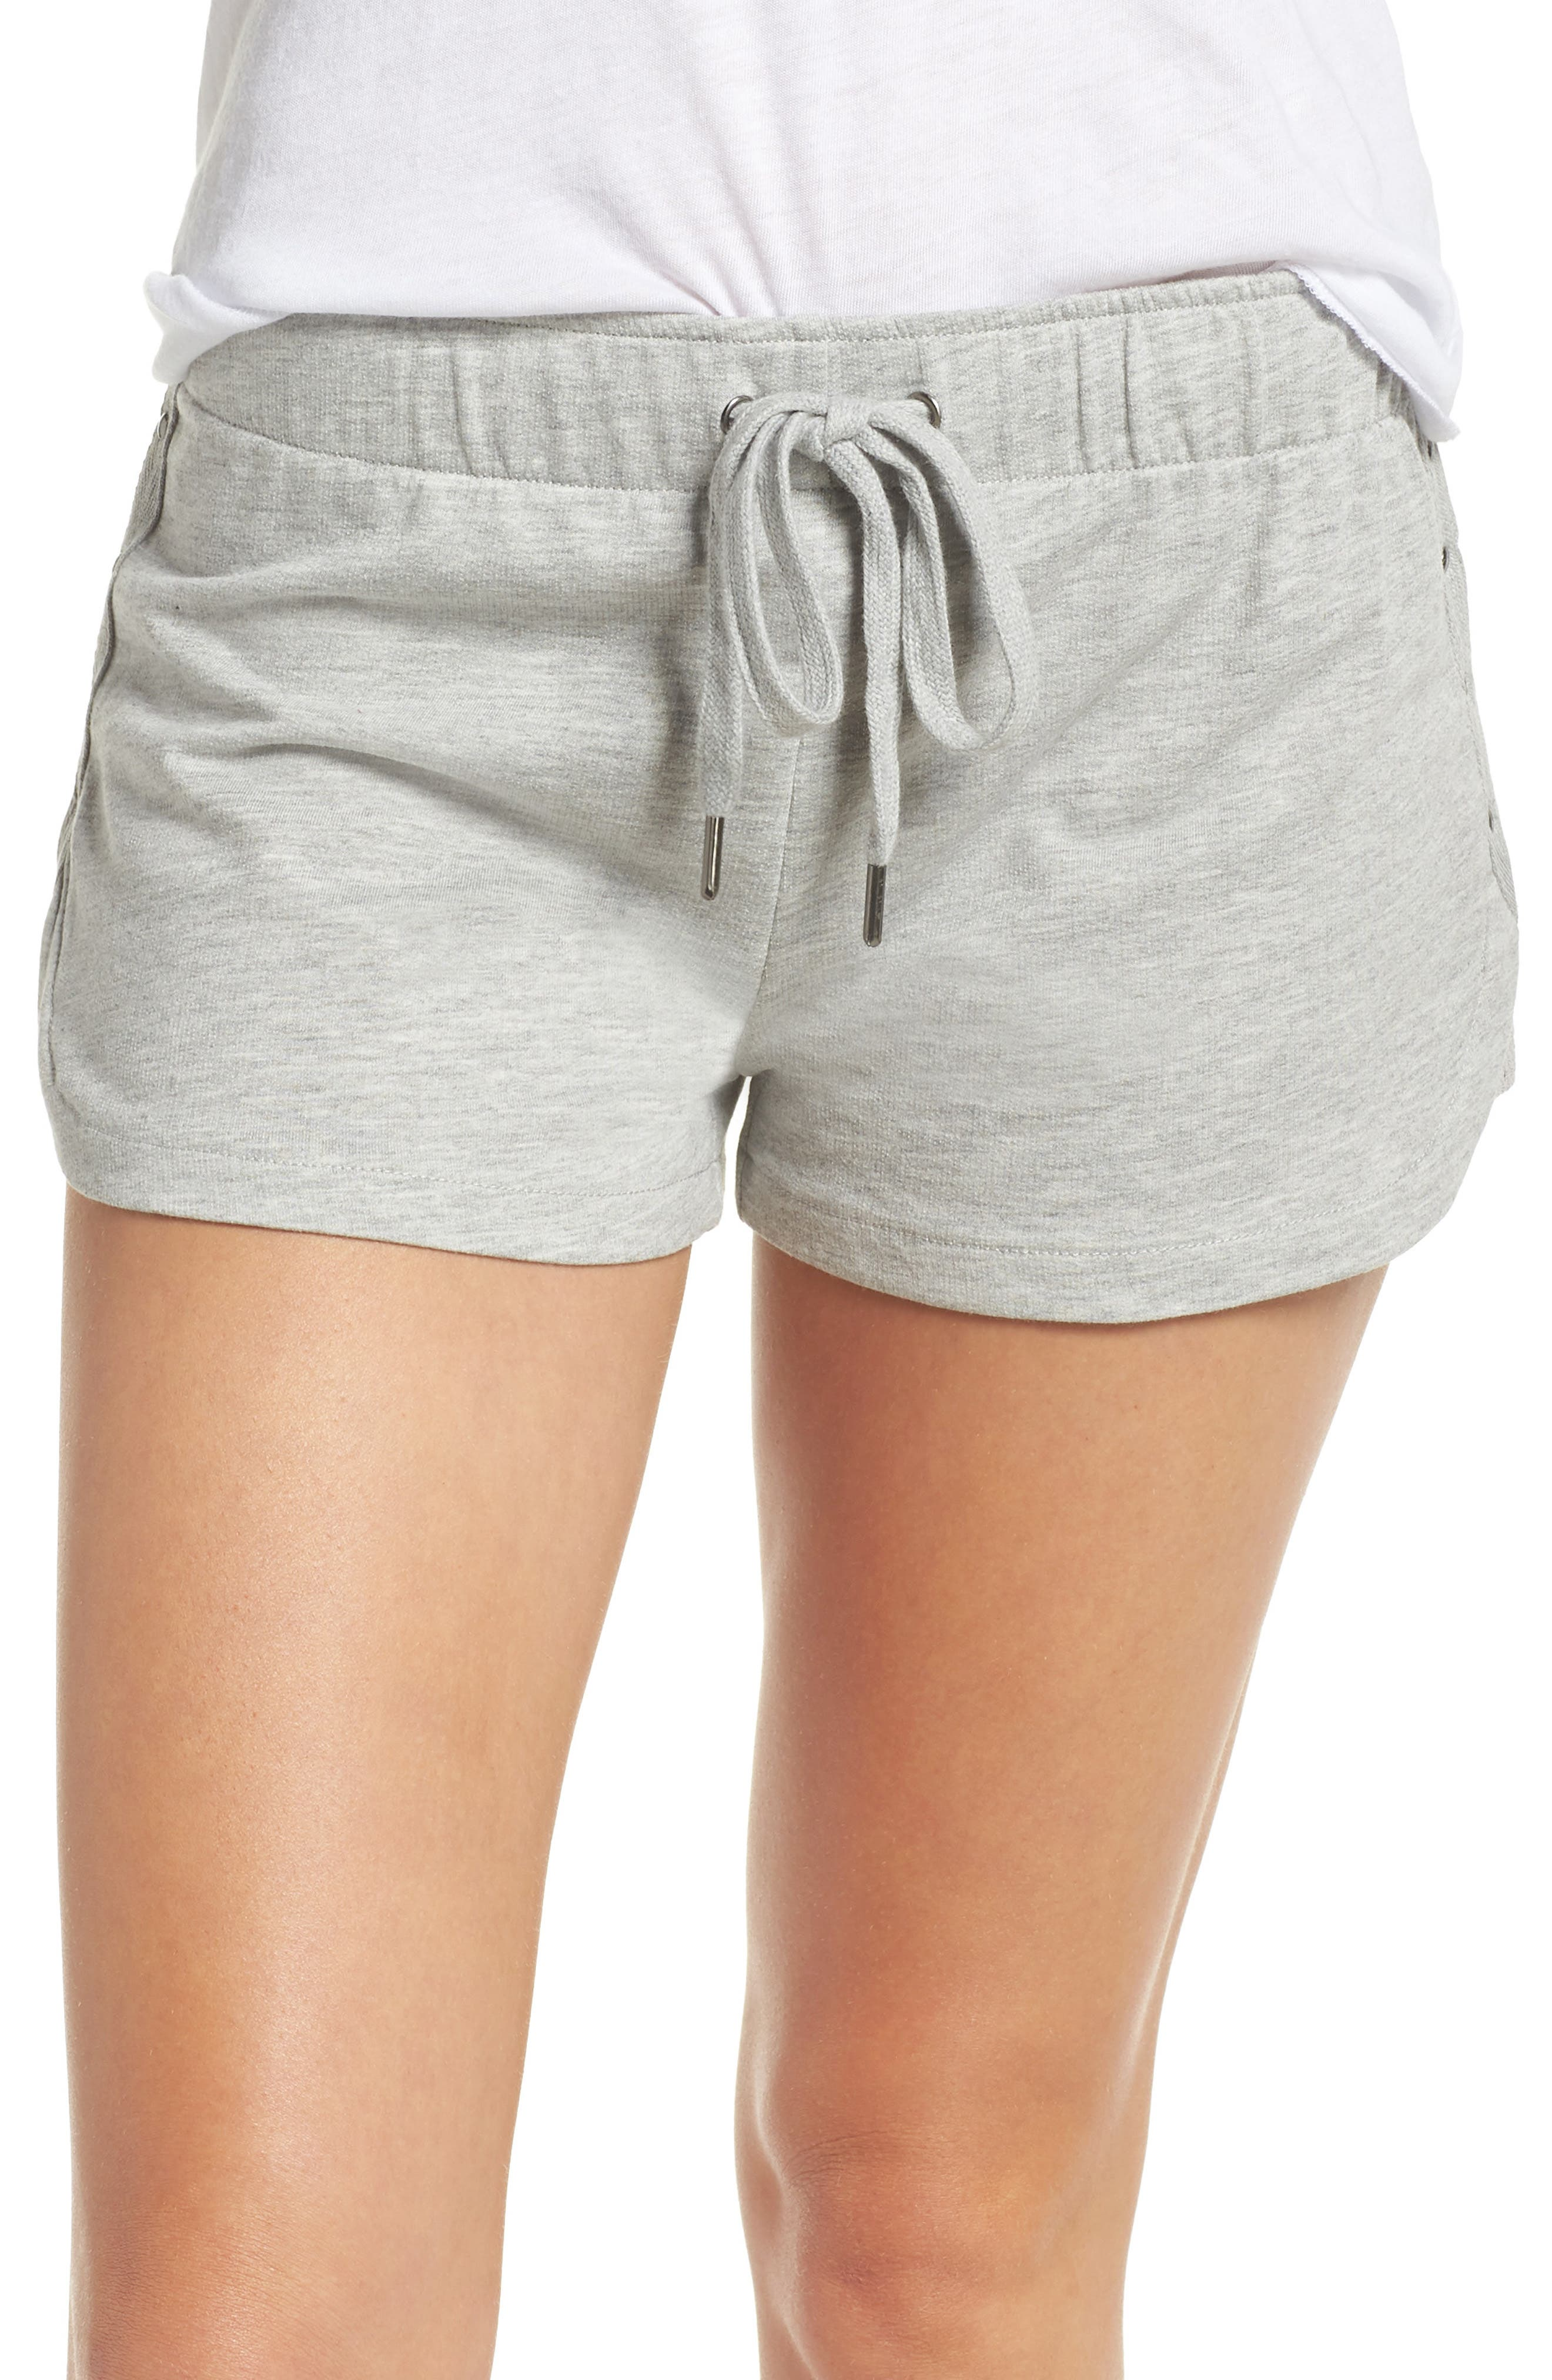 Pajama Shorts,                         Main,                         color, H Grey